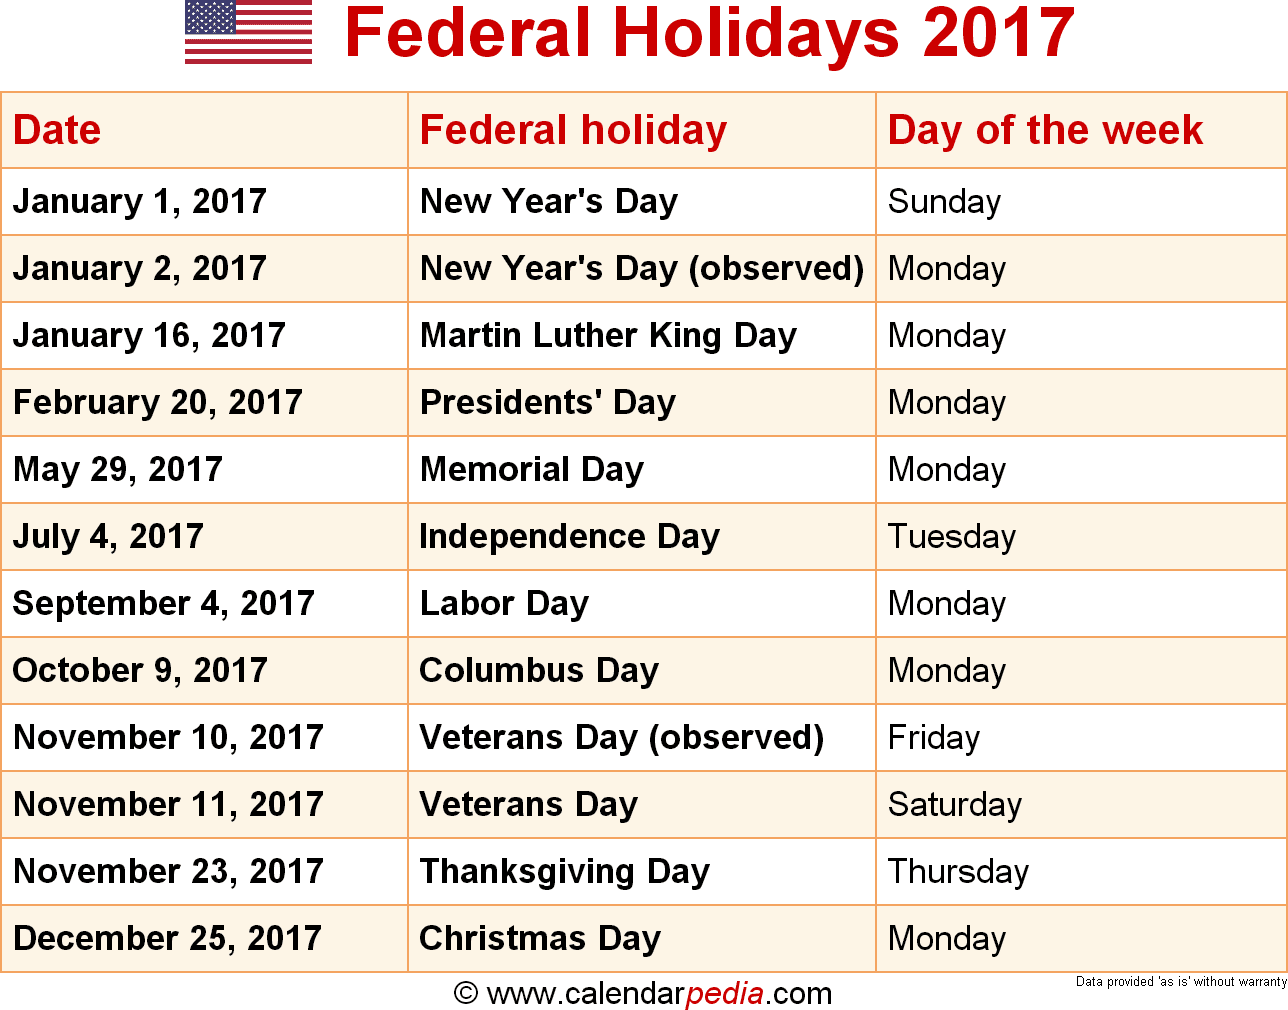 FEDERAL HOLIDAYS AND OBSERVANCE